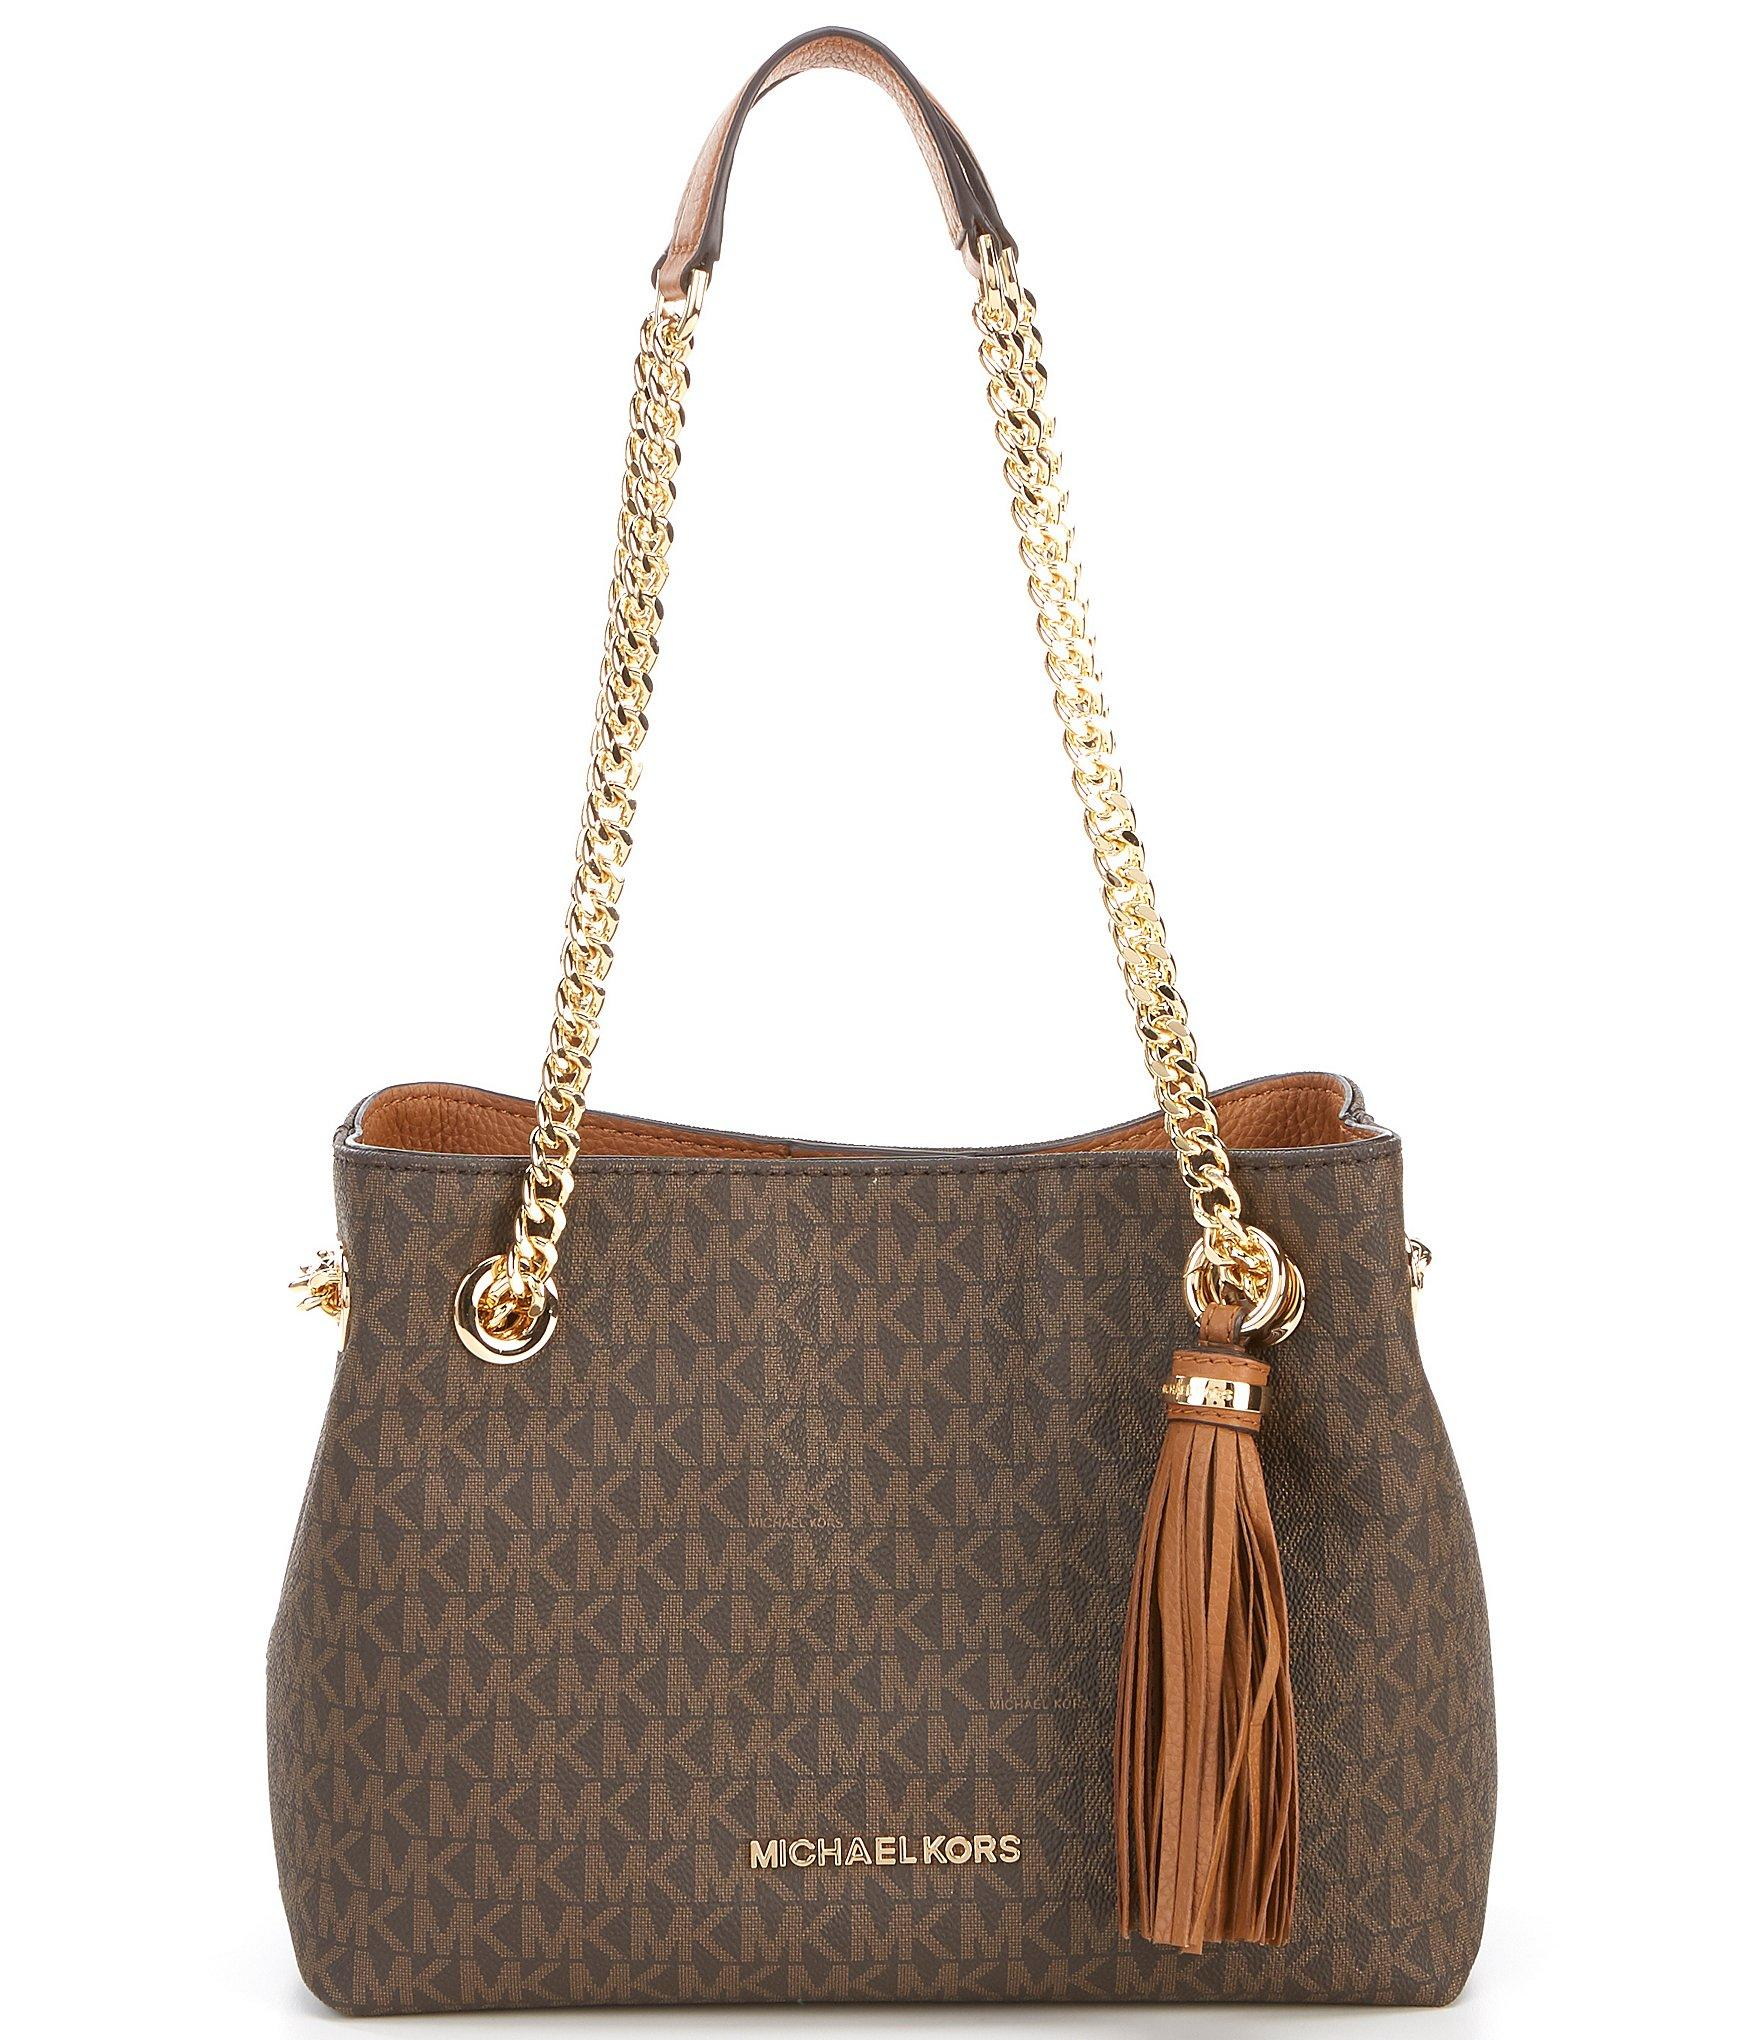 5520bc19e930 Lyst - MICHAEL Michael Kors Jet Set Chain Medium Messenger Bag in Brown